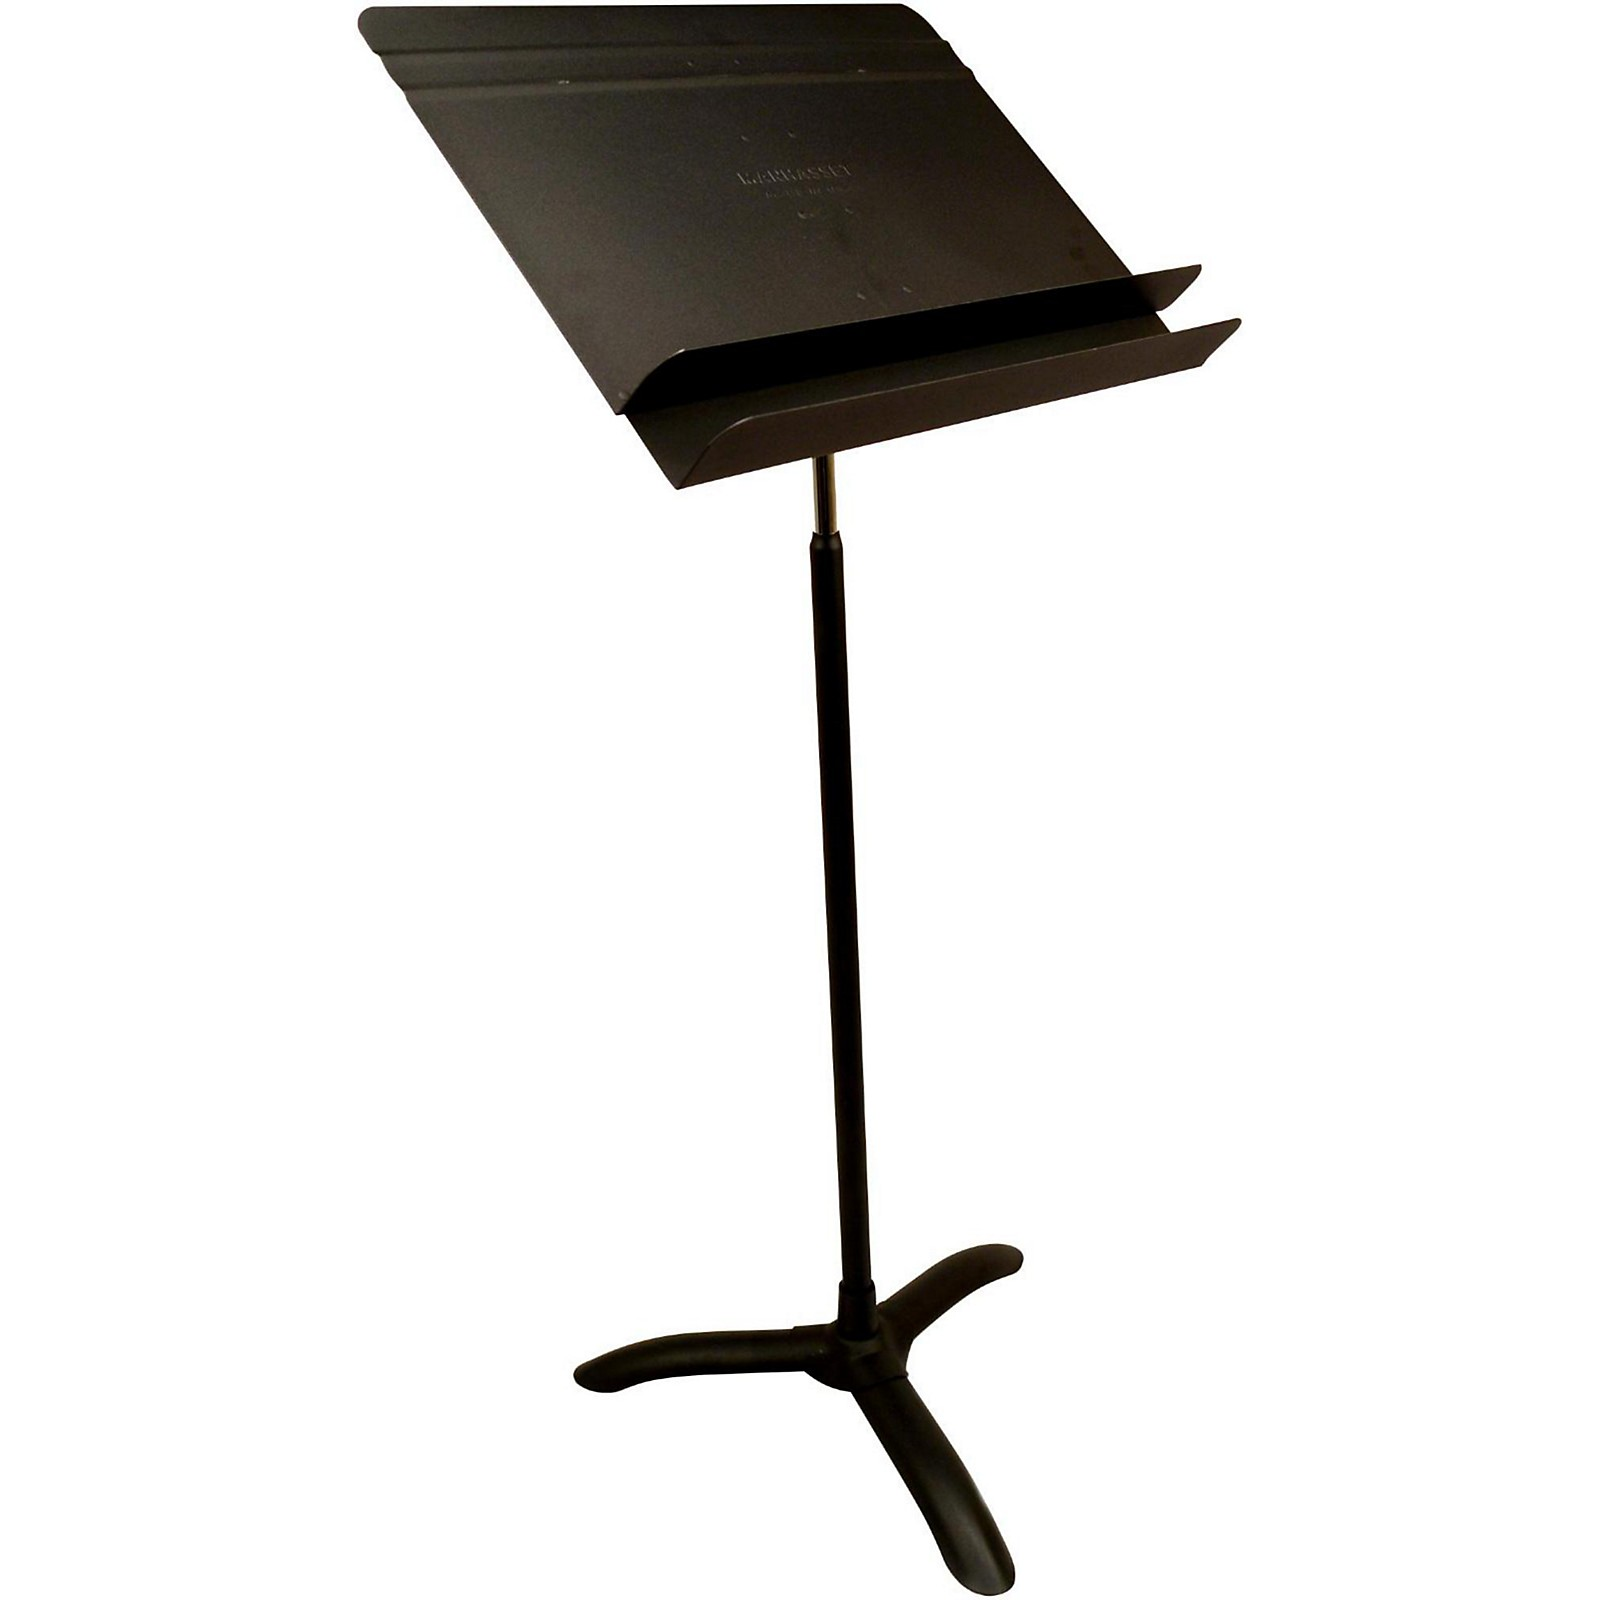 Manhasset MH5001 Orchestra Stand